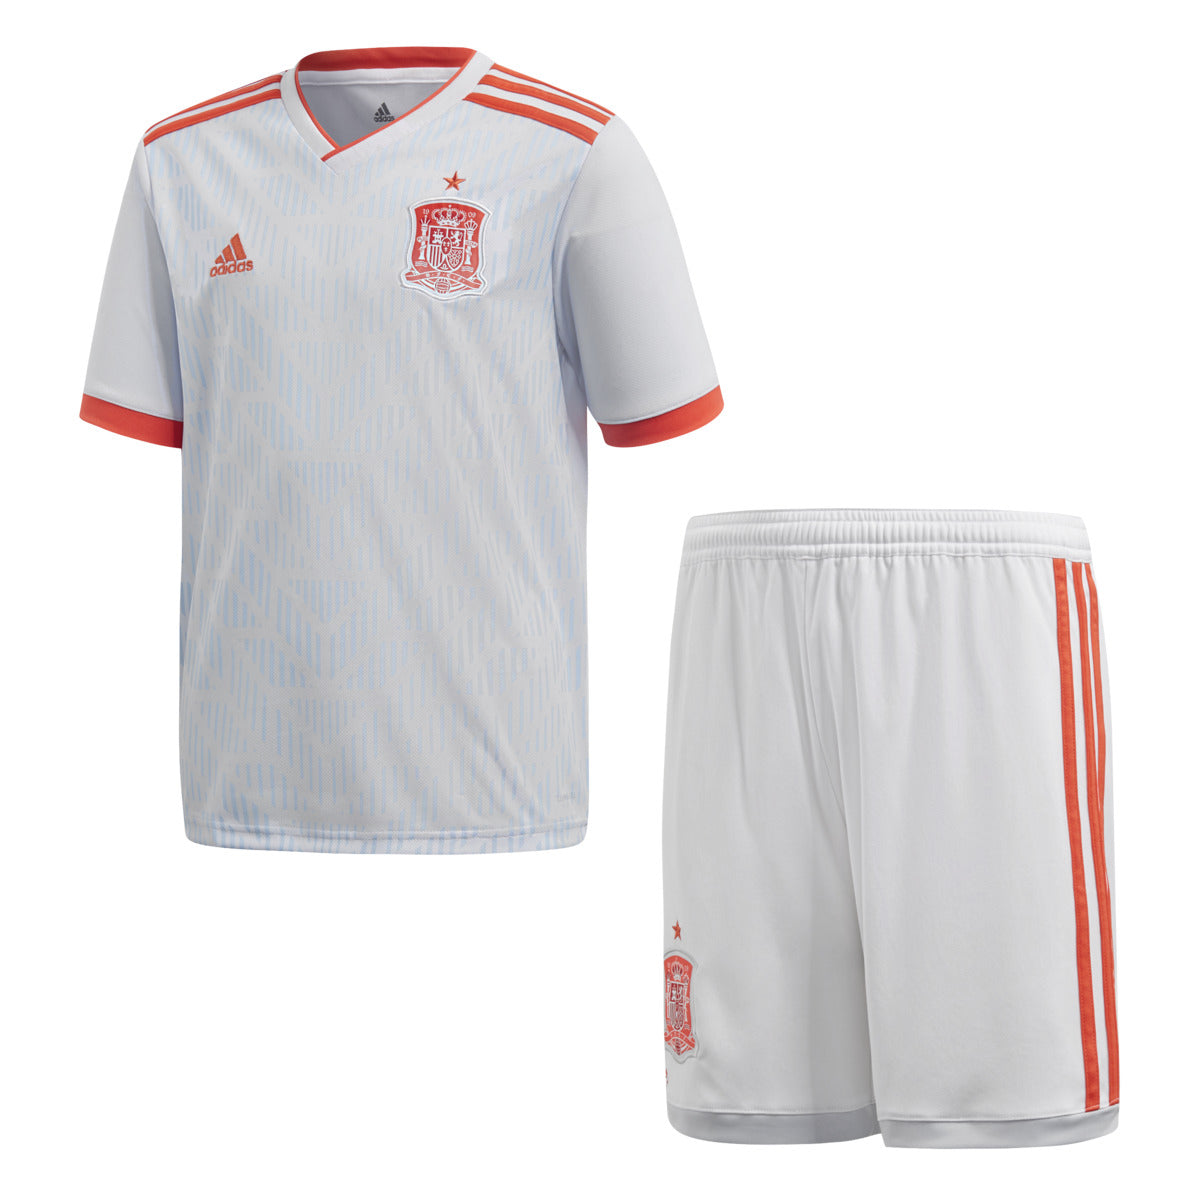 new style 13b2b 29837 Spain Away Football Jersey & Shorts FIFA World Cup 2018